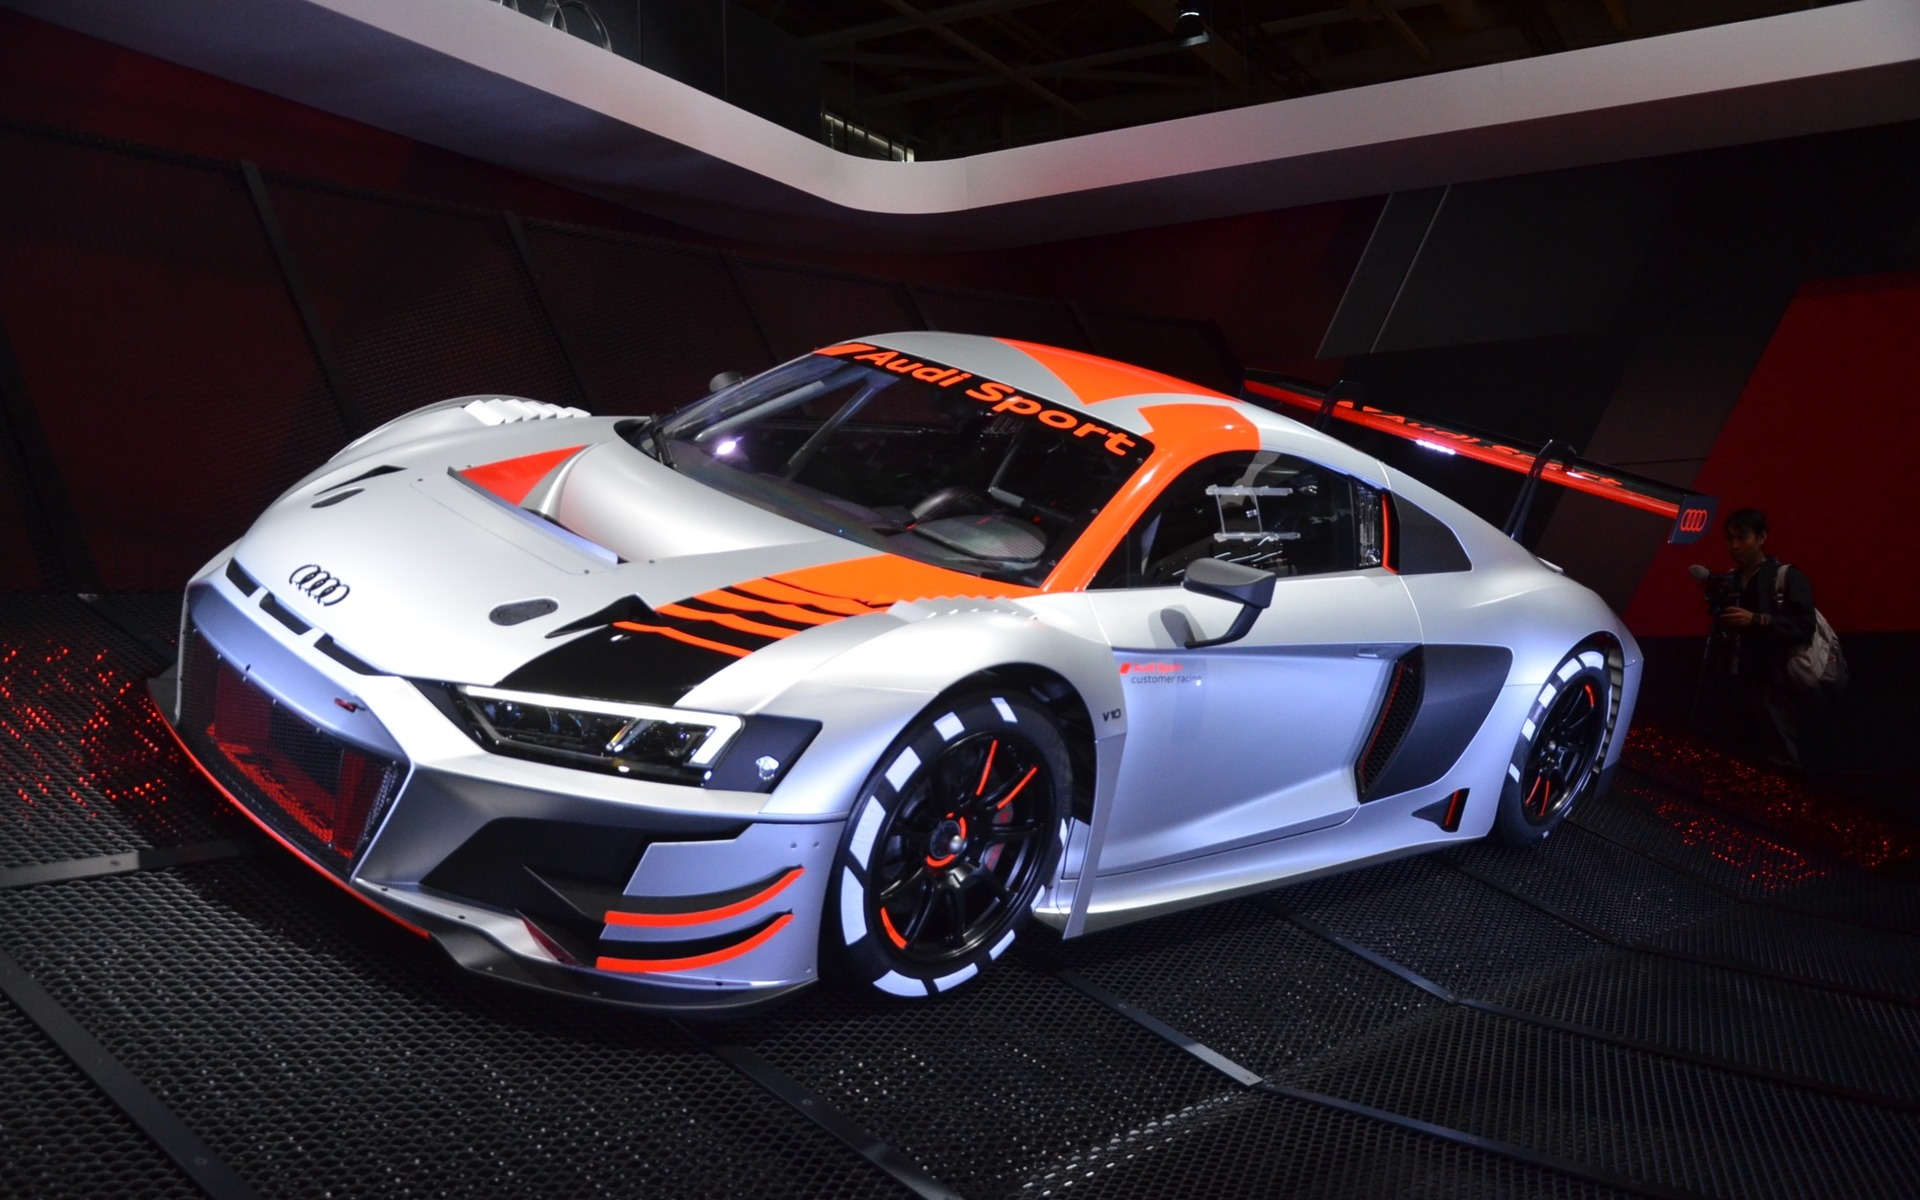 audi r8 lms gt3 cette voiture de course pr sage le nouveau look de la r8 guide auto. Black Bedroom Furniture Sets. Home Design Ideas